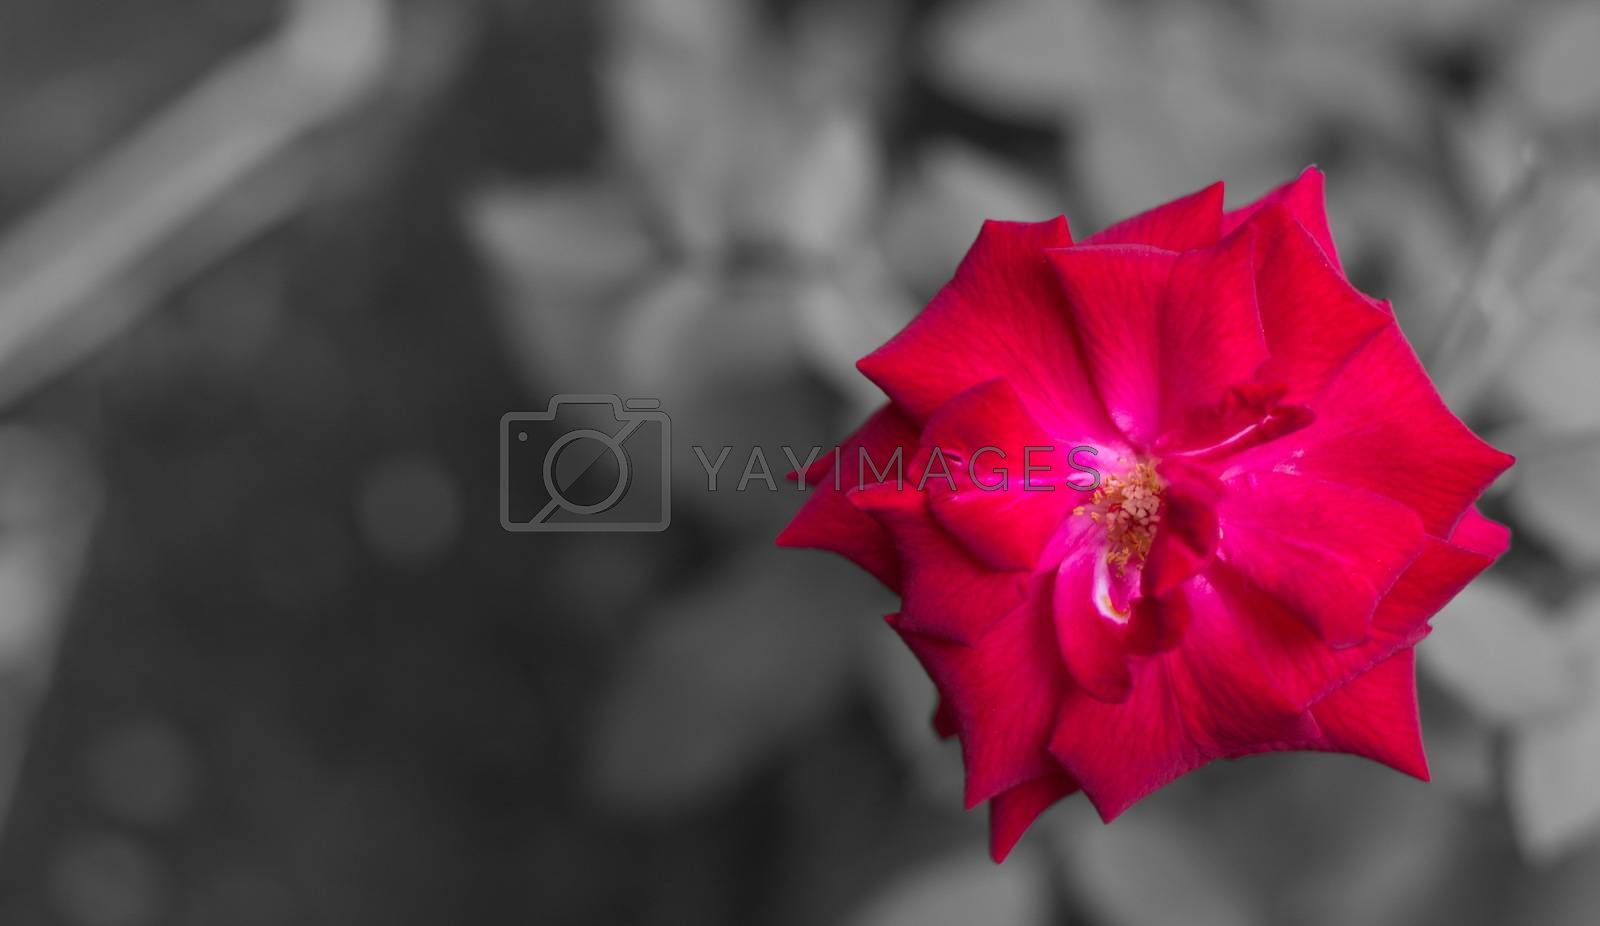 Red rose isolated on gray background and texture.